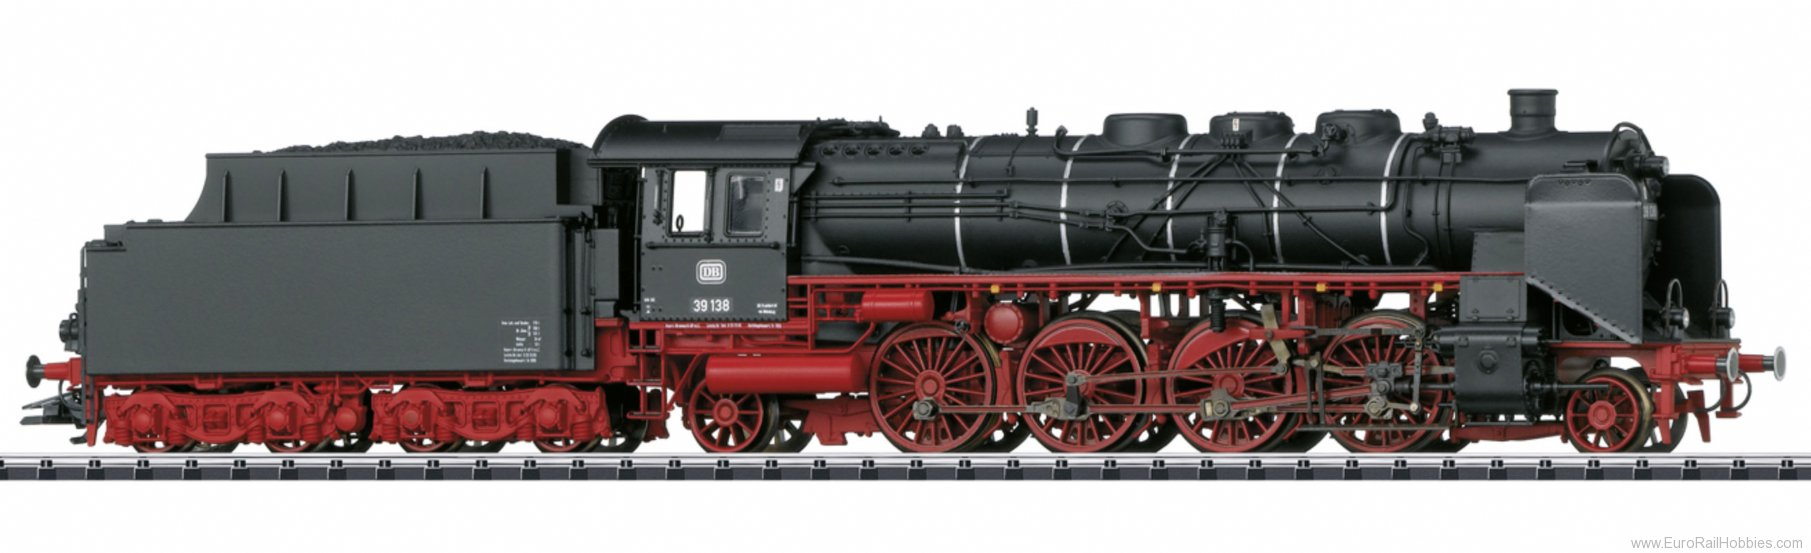 Trix 22240 DB cl 39 Passenger Steam Locomotive, DCC/MFX